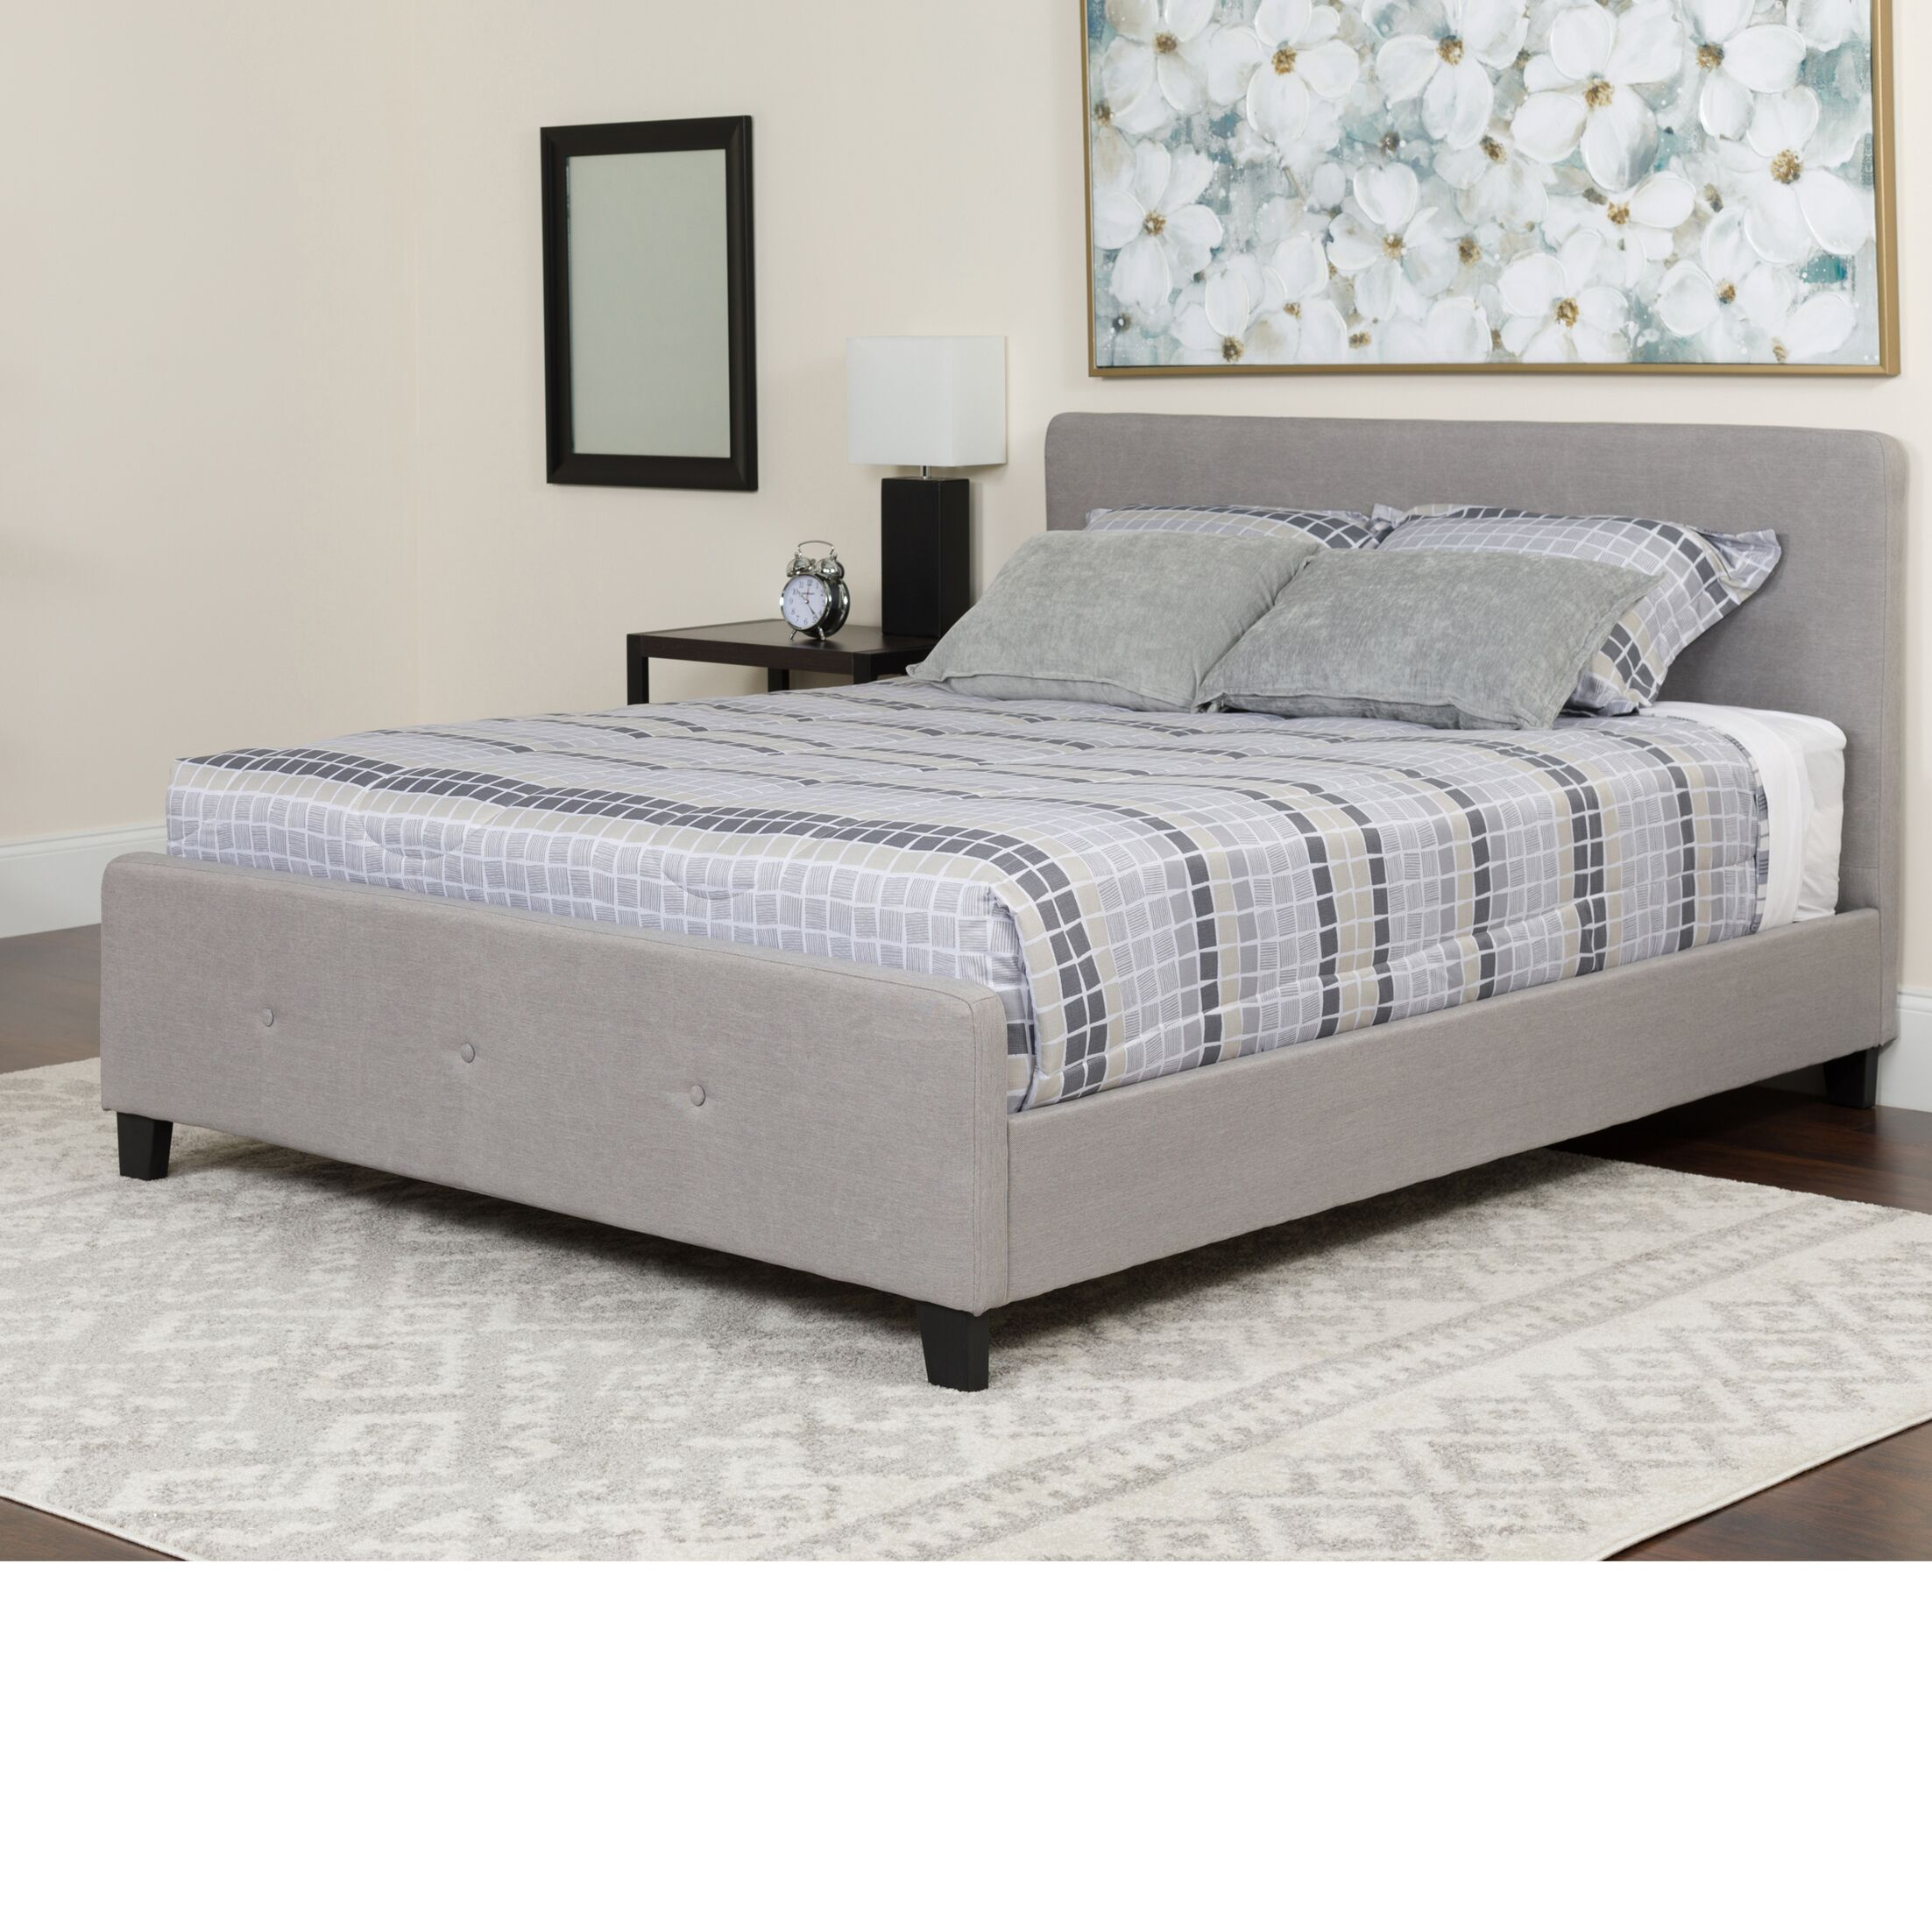 Konen Tufted Upholstered Platform Bed Color: Light Gray, Size: Queen